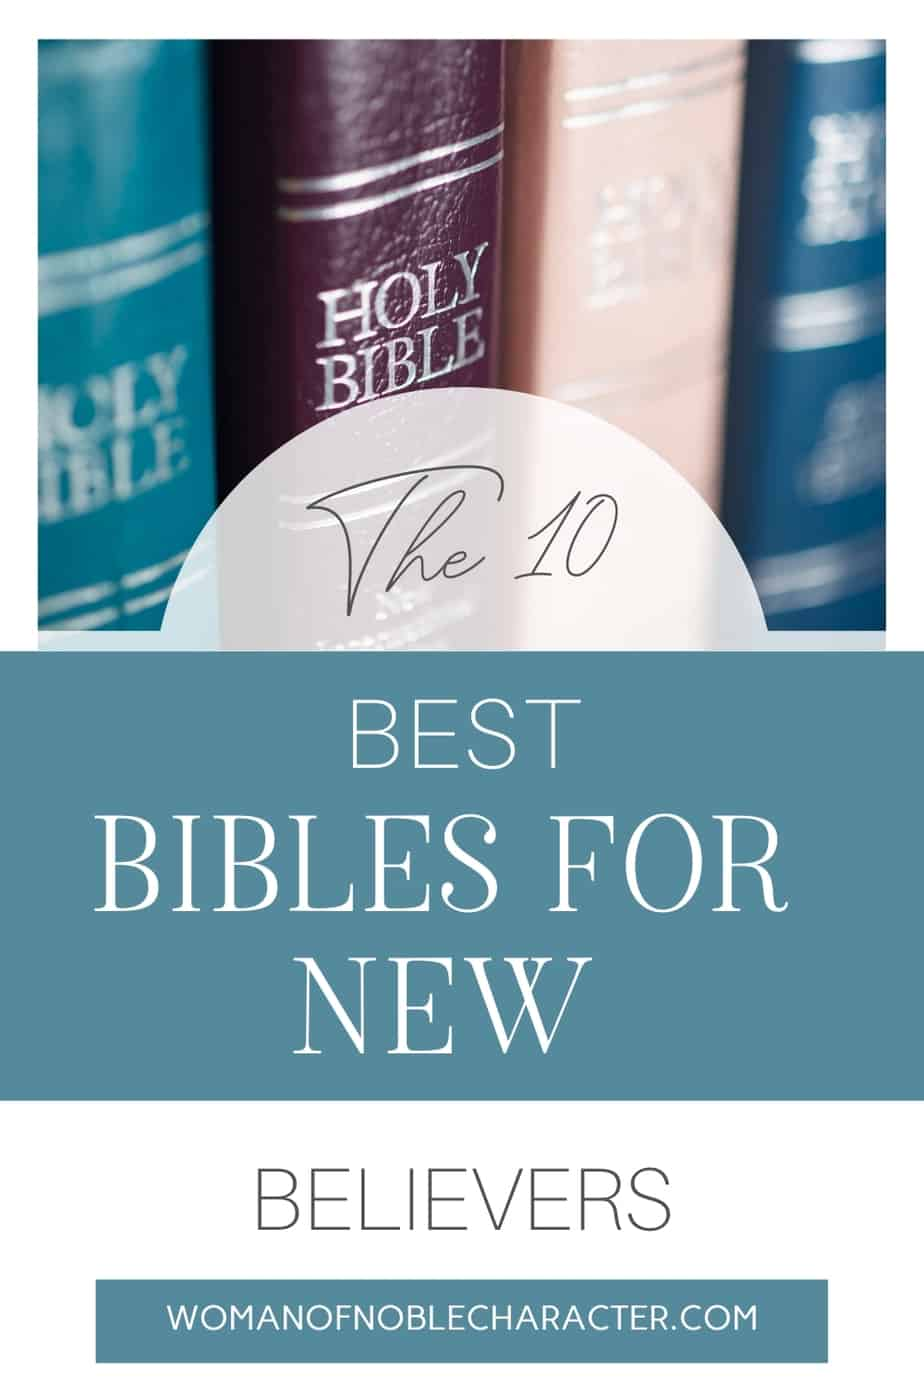 image of Bibles on a shelf with text overlay the 10 best Bibles for new believers